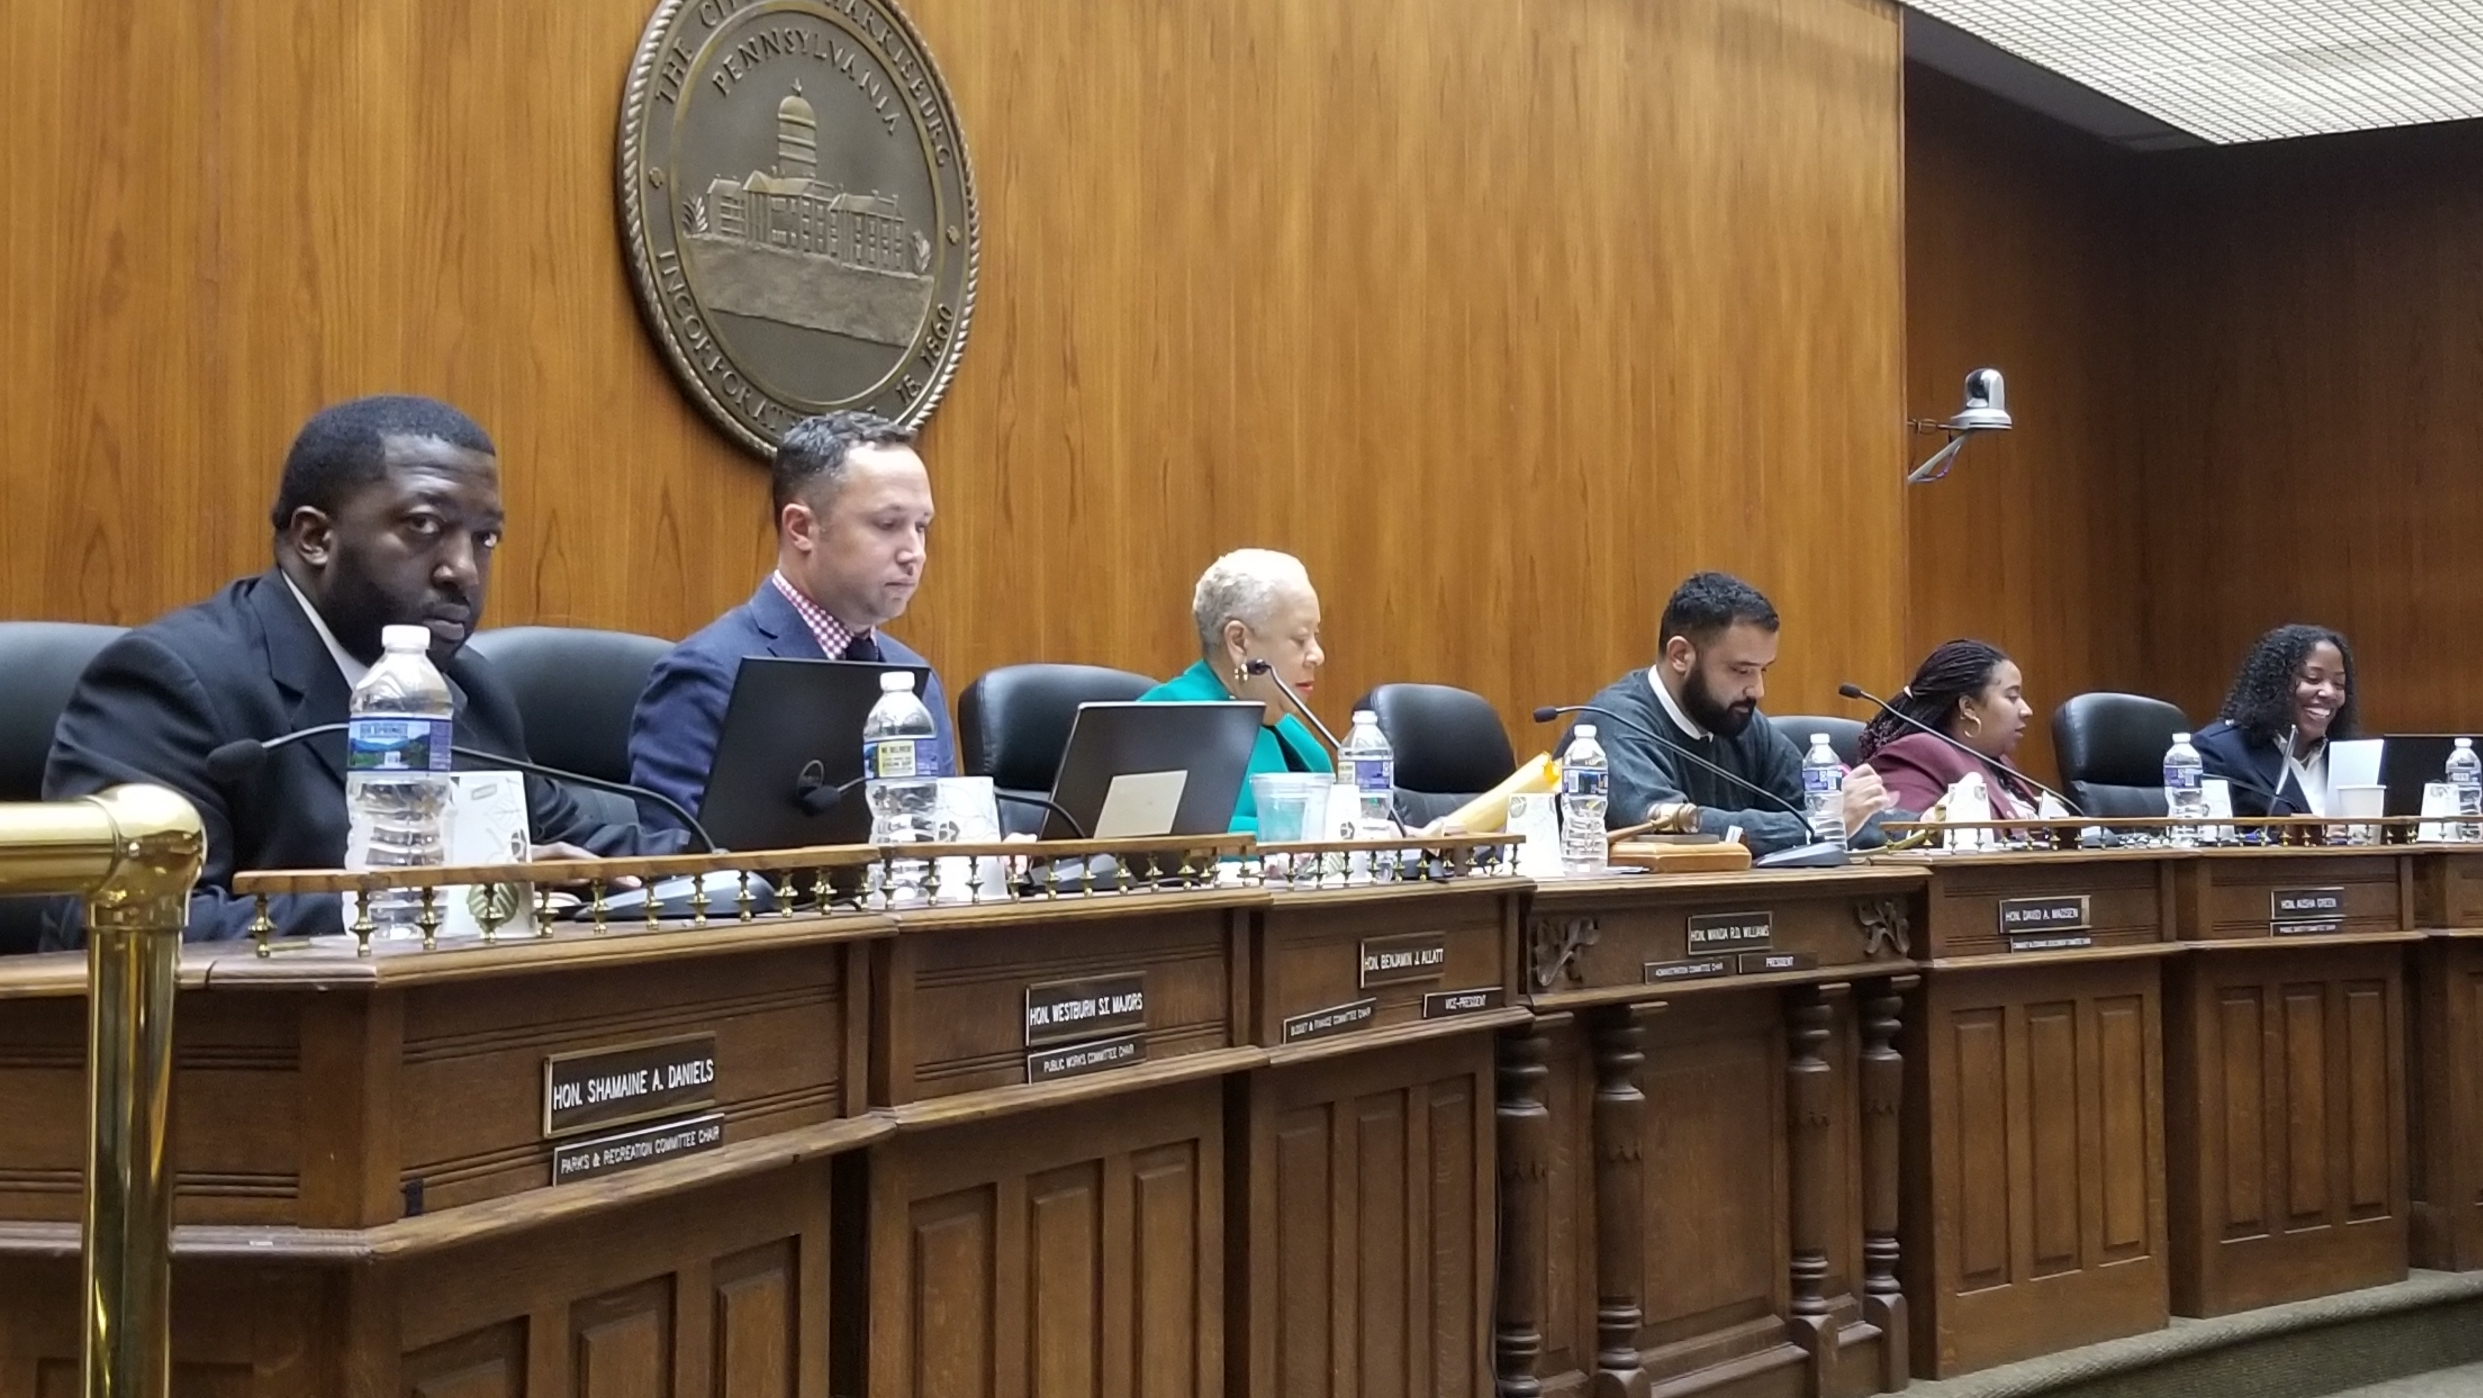 Storm water fee, plan to reduce sewage in Susquehanna River scrutinized by Harrisburg officials